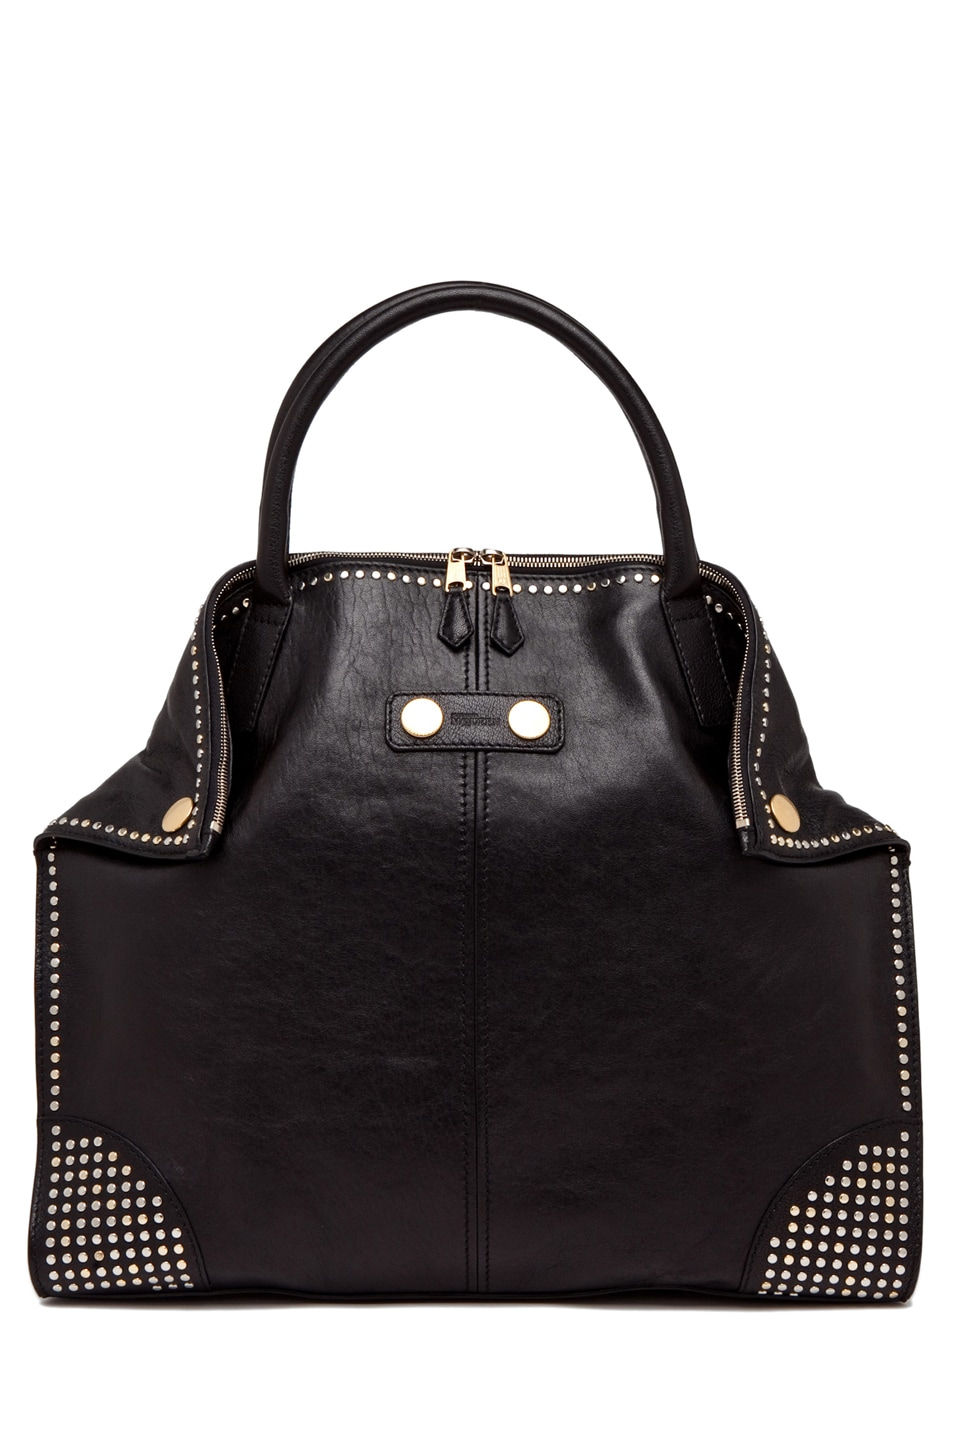 Image 1 of Alexander McQueen Tote in Black